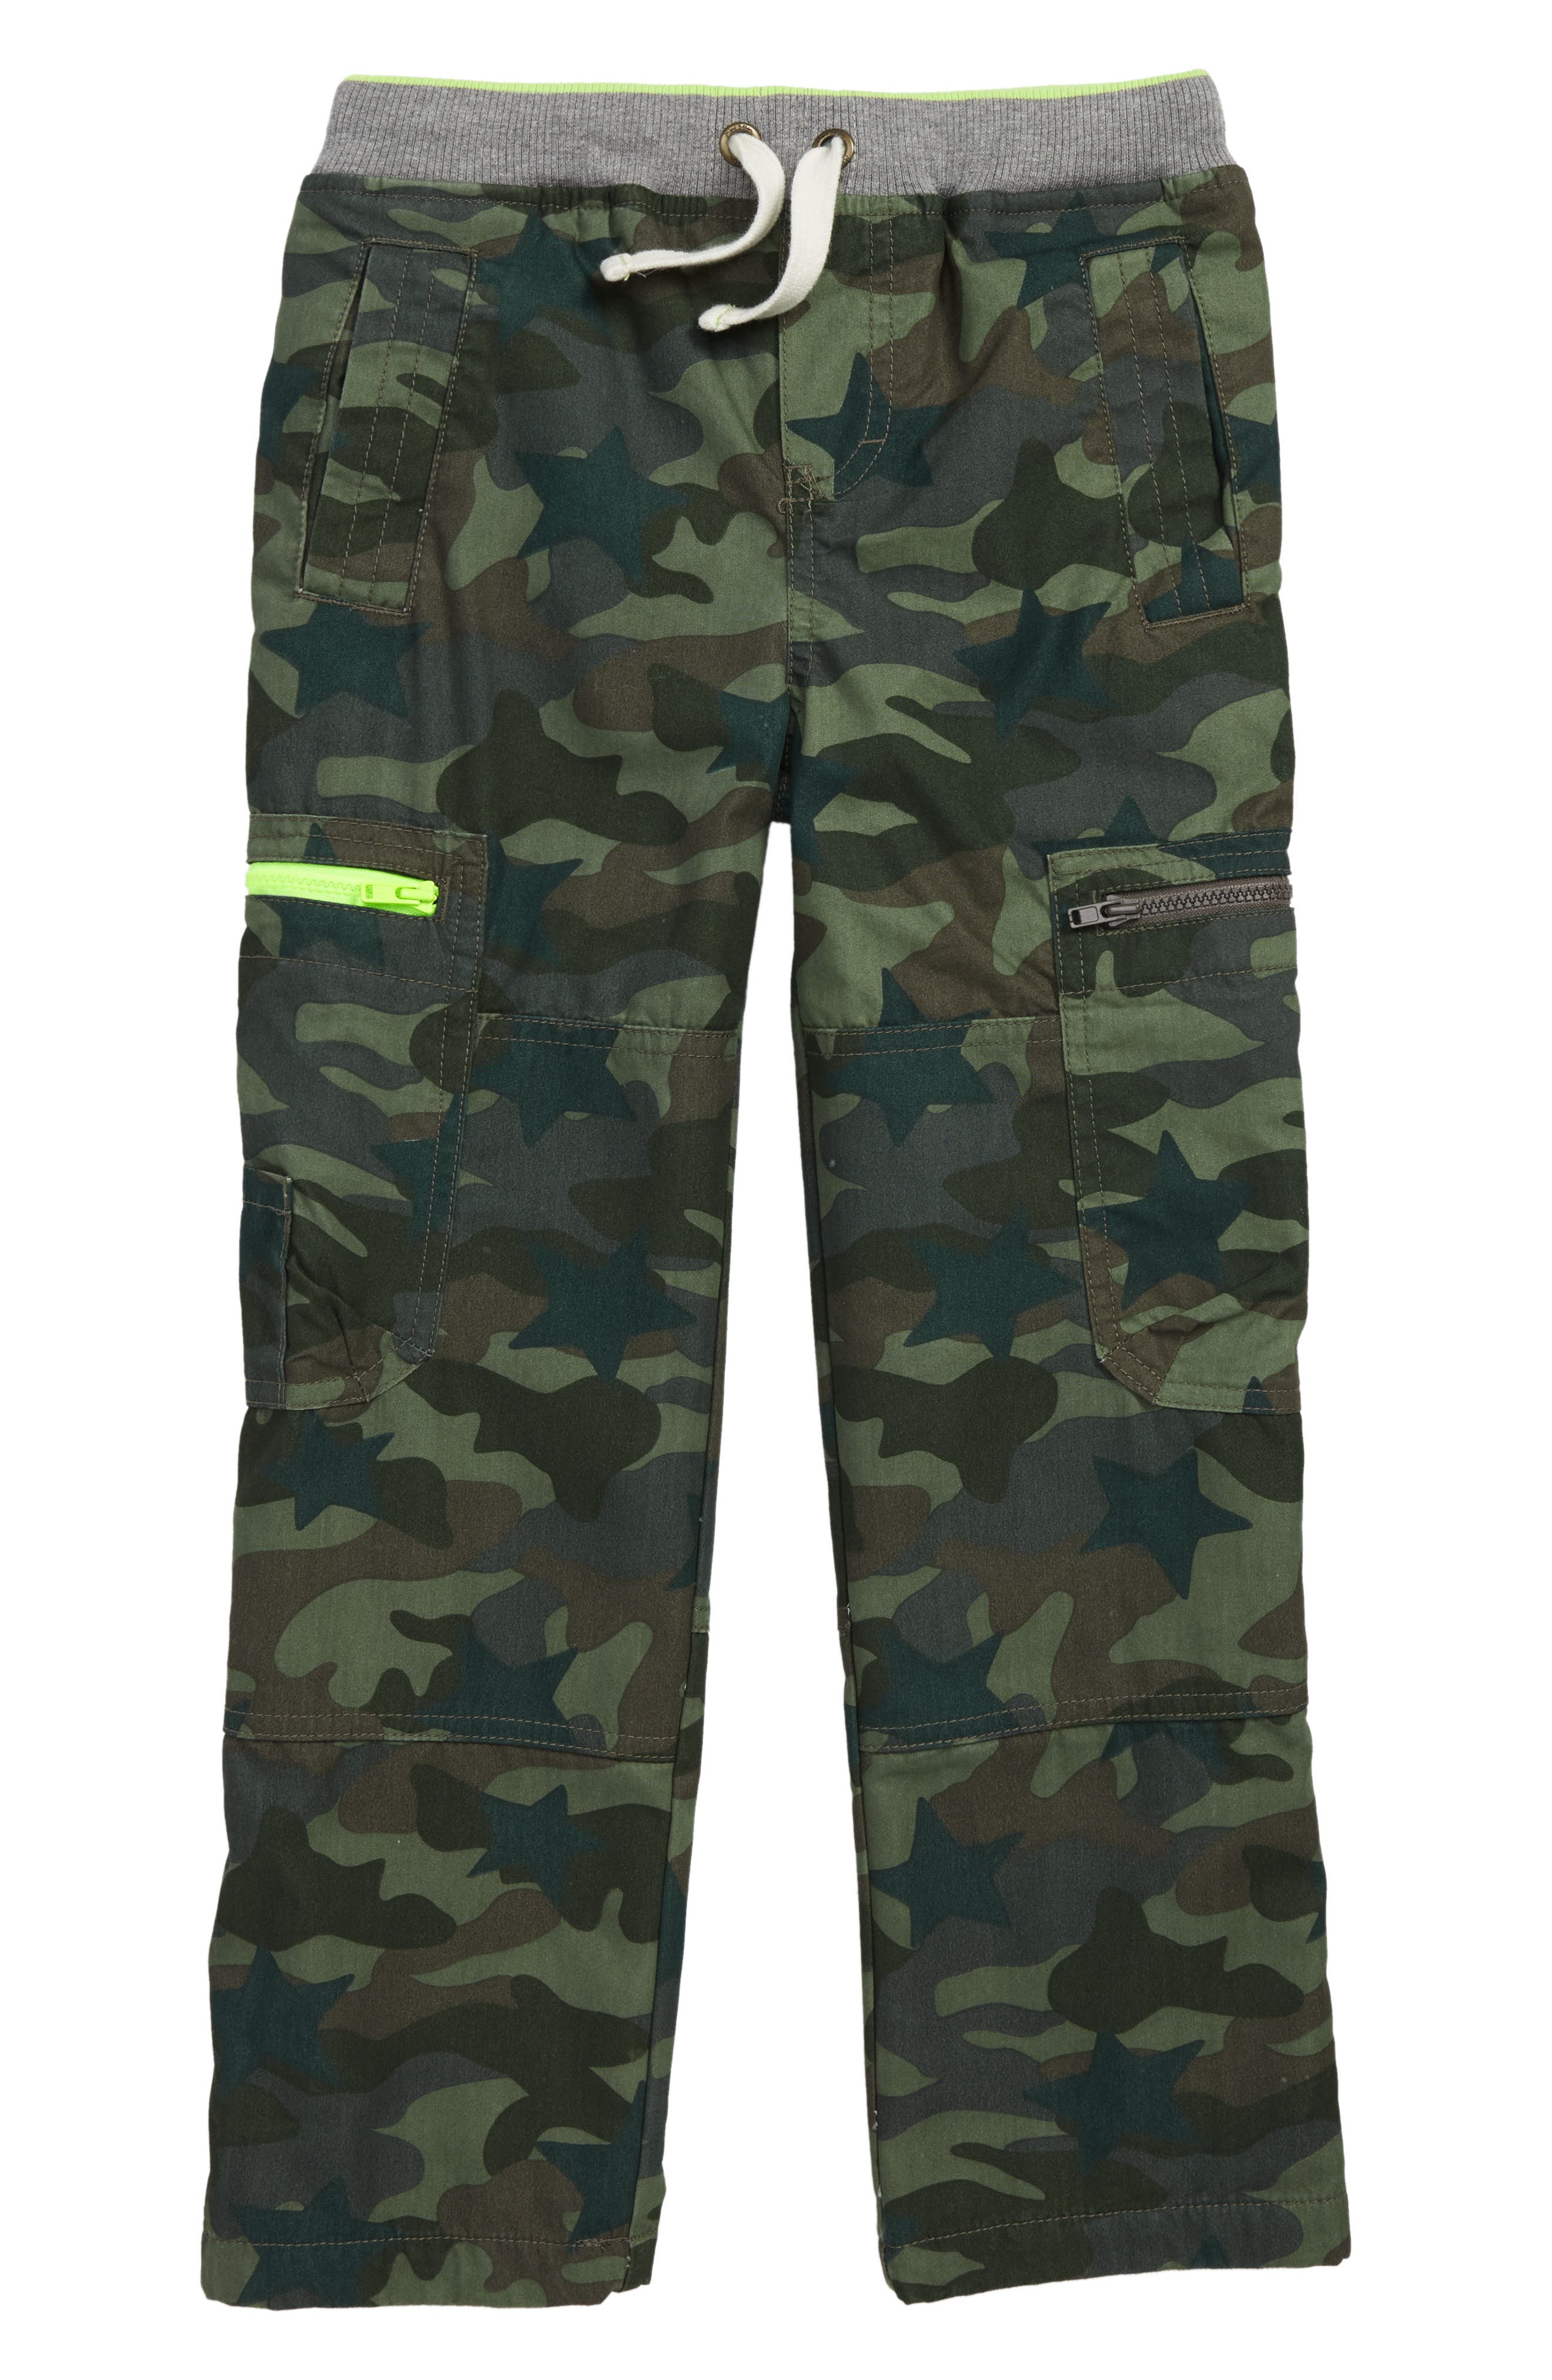 Cargo Pull On Pants,                         Main,                         color, KHAKI GREEN CAMOFLAGE STAR